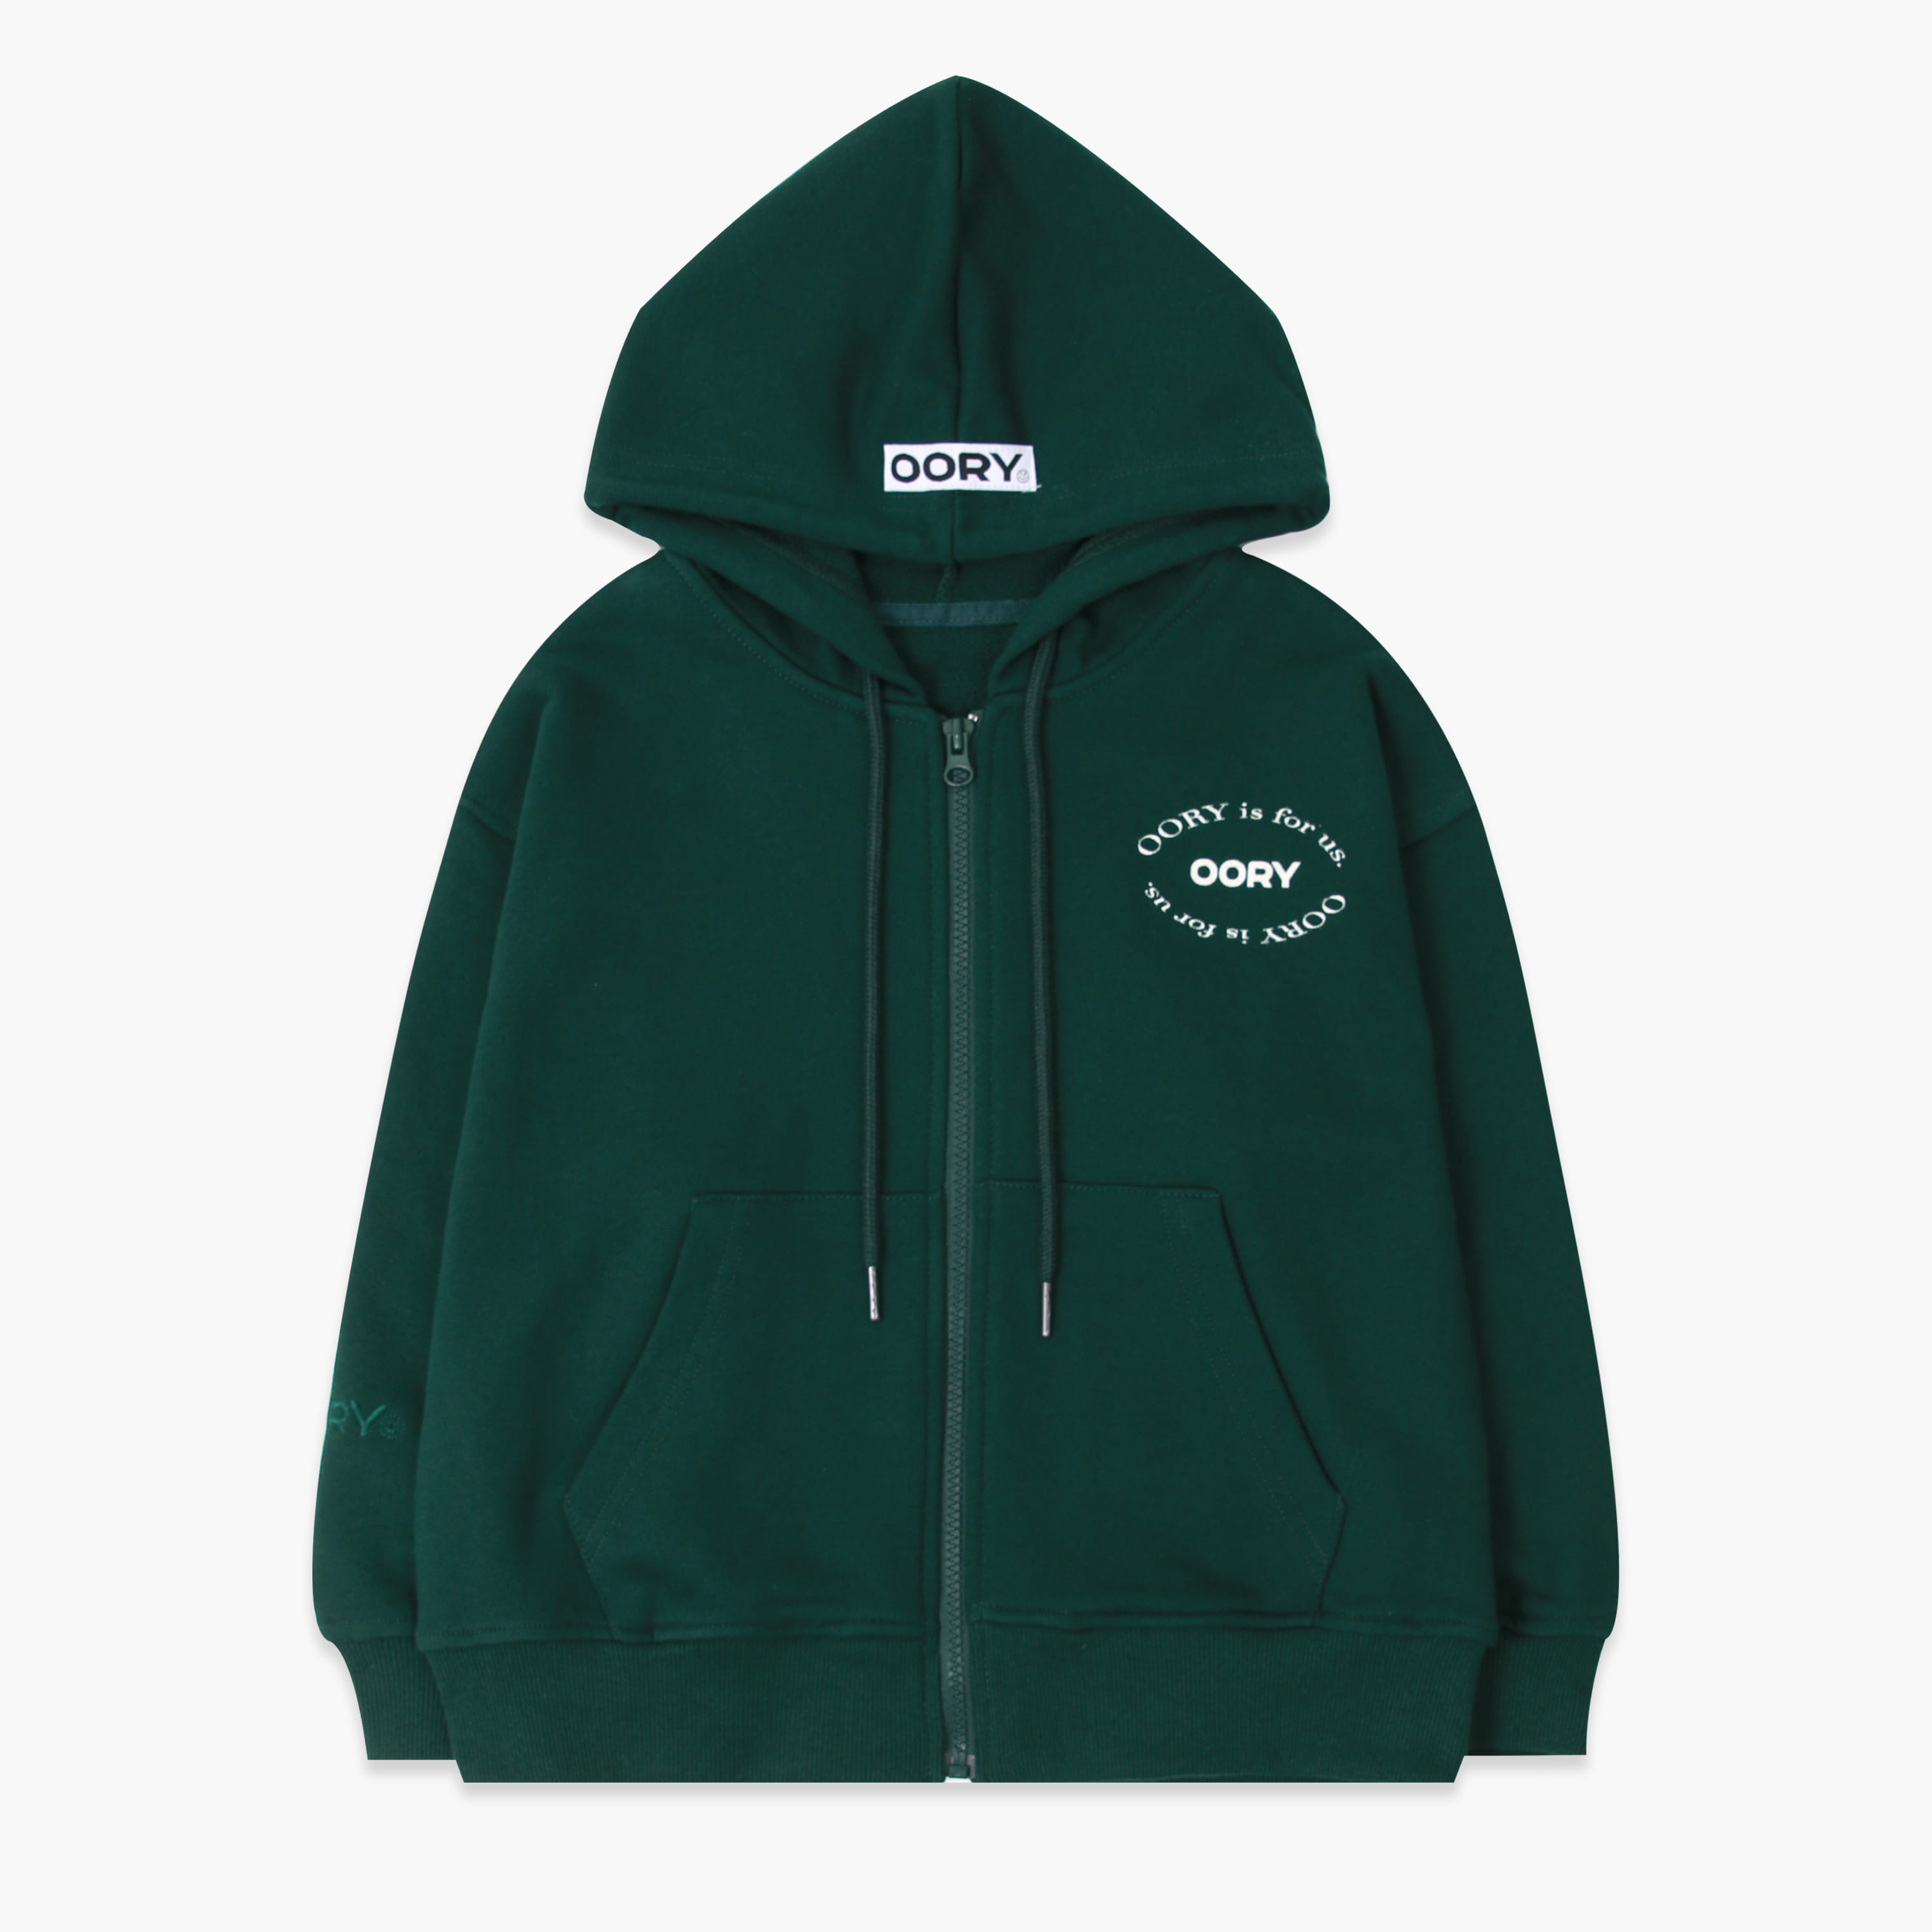 OORY 21 S/S Hood zip up - green